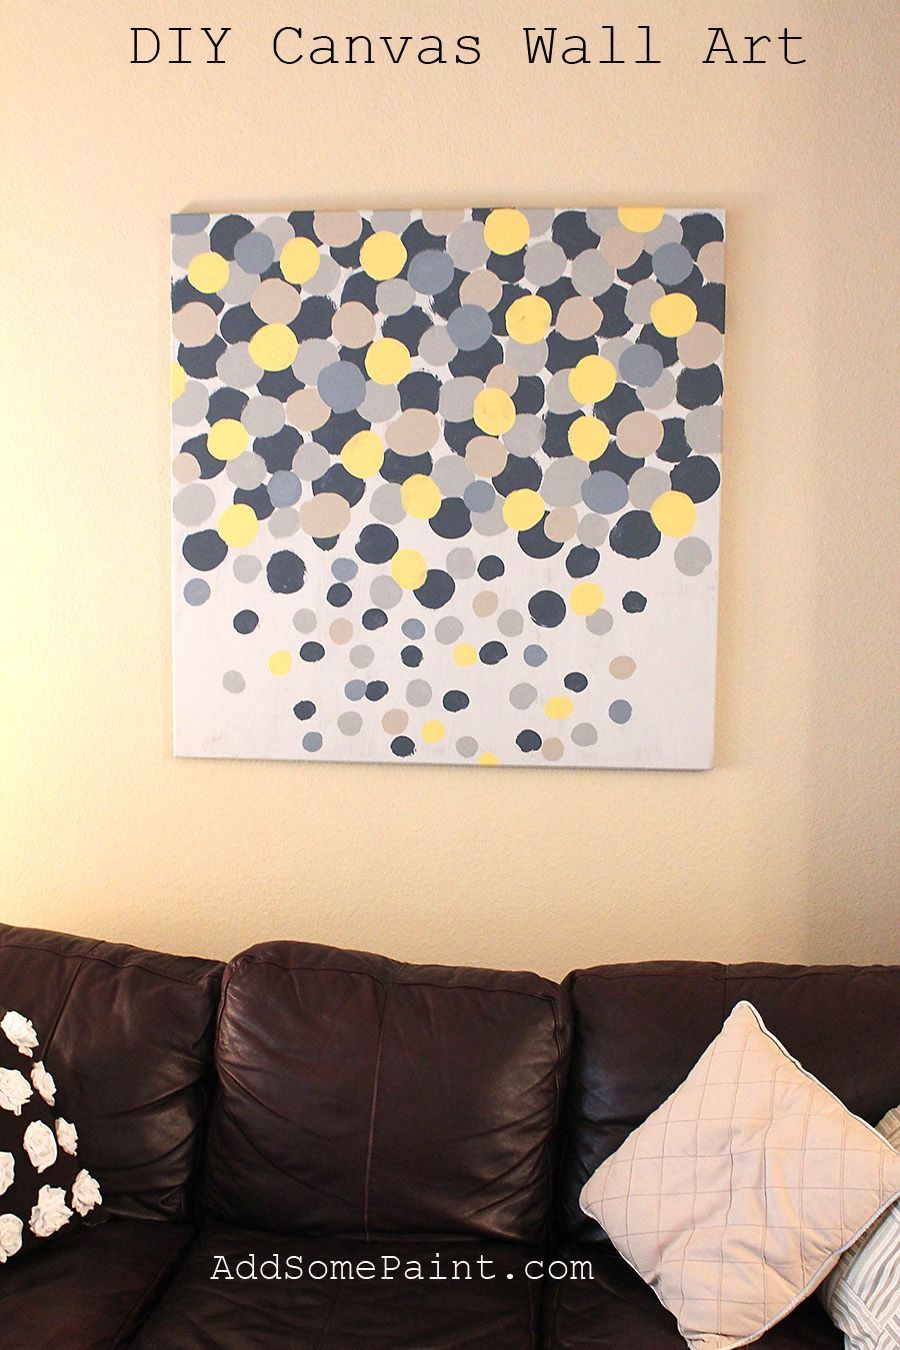 Simple Canvas Paintings For Beginners 1350 Easy Canvas Wall Art Canvaswallart Diy Wall Painting Diy Canvas Art Diy Canvas Wall Art